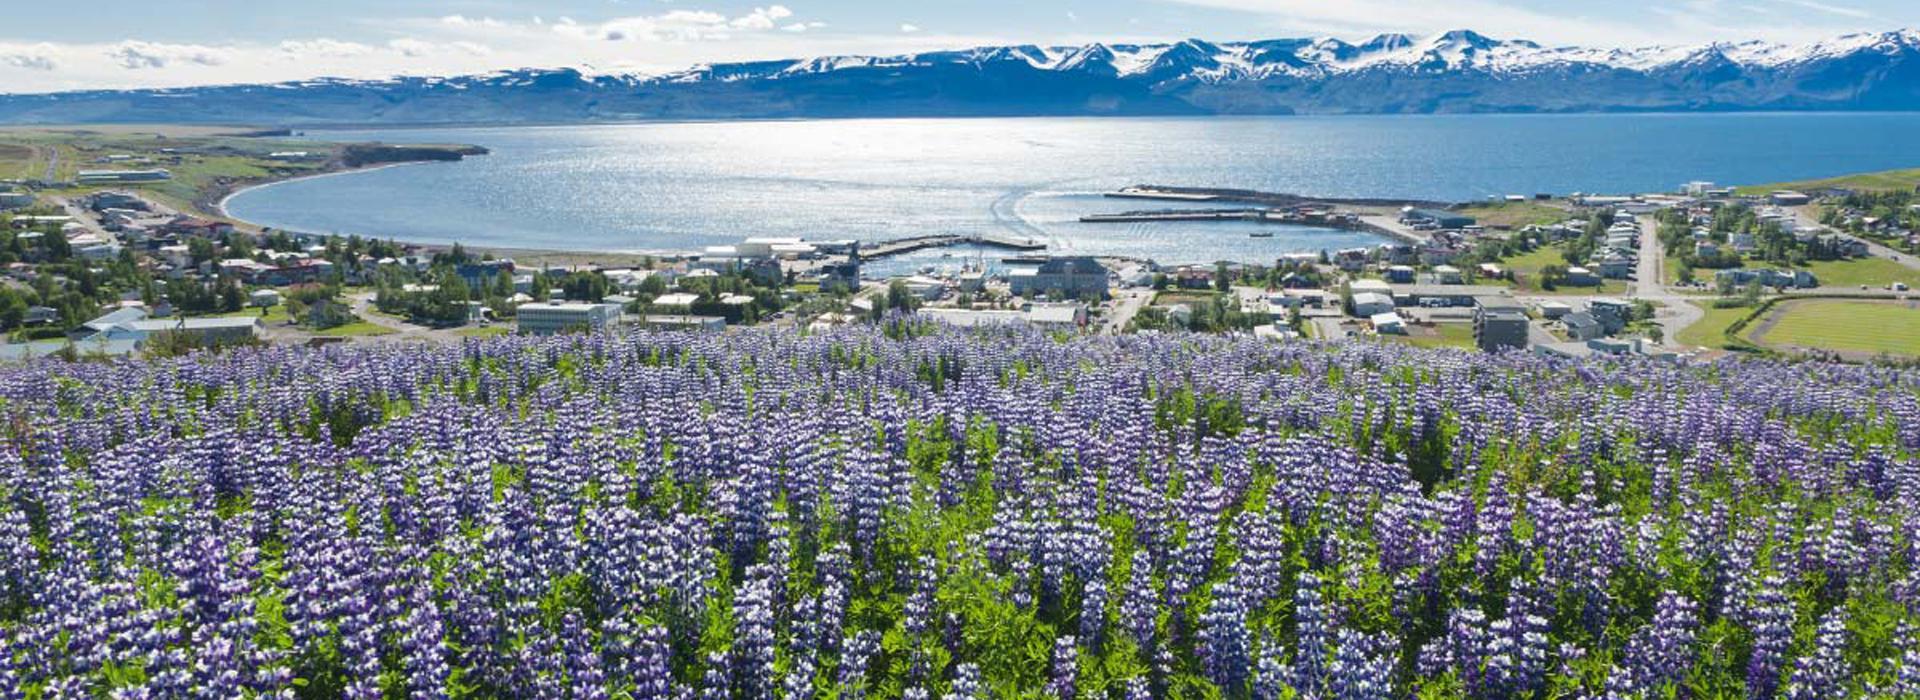 Flyover Husavik from Hill with Lupine Flowers